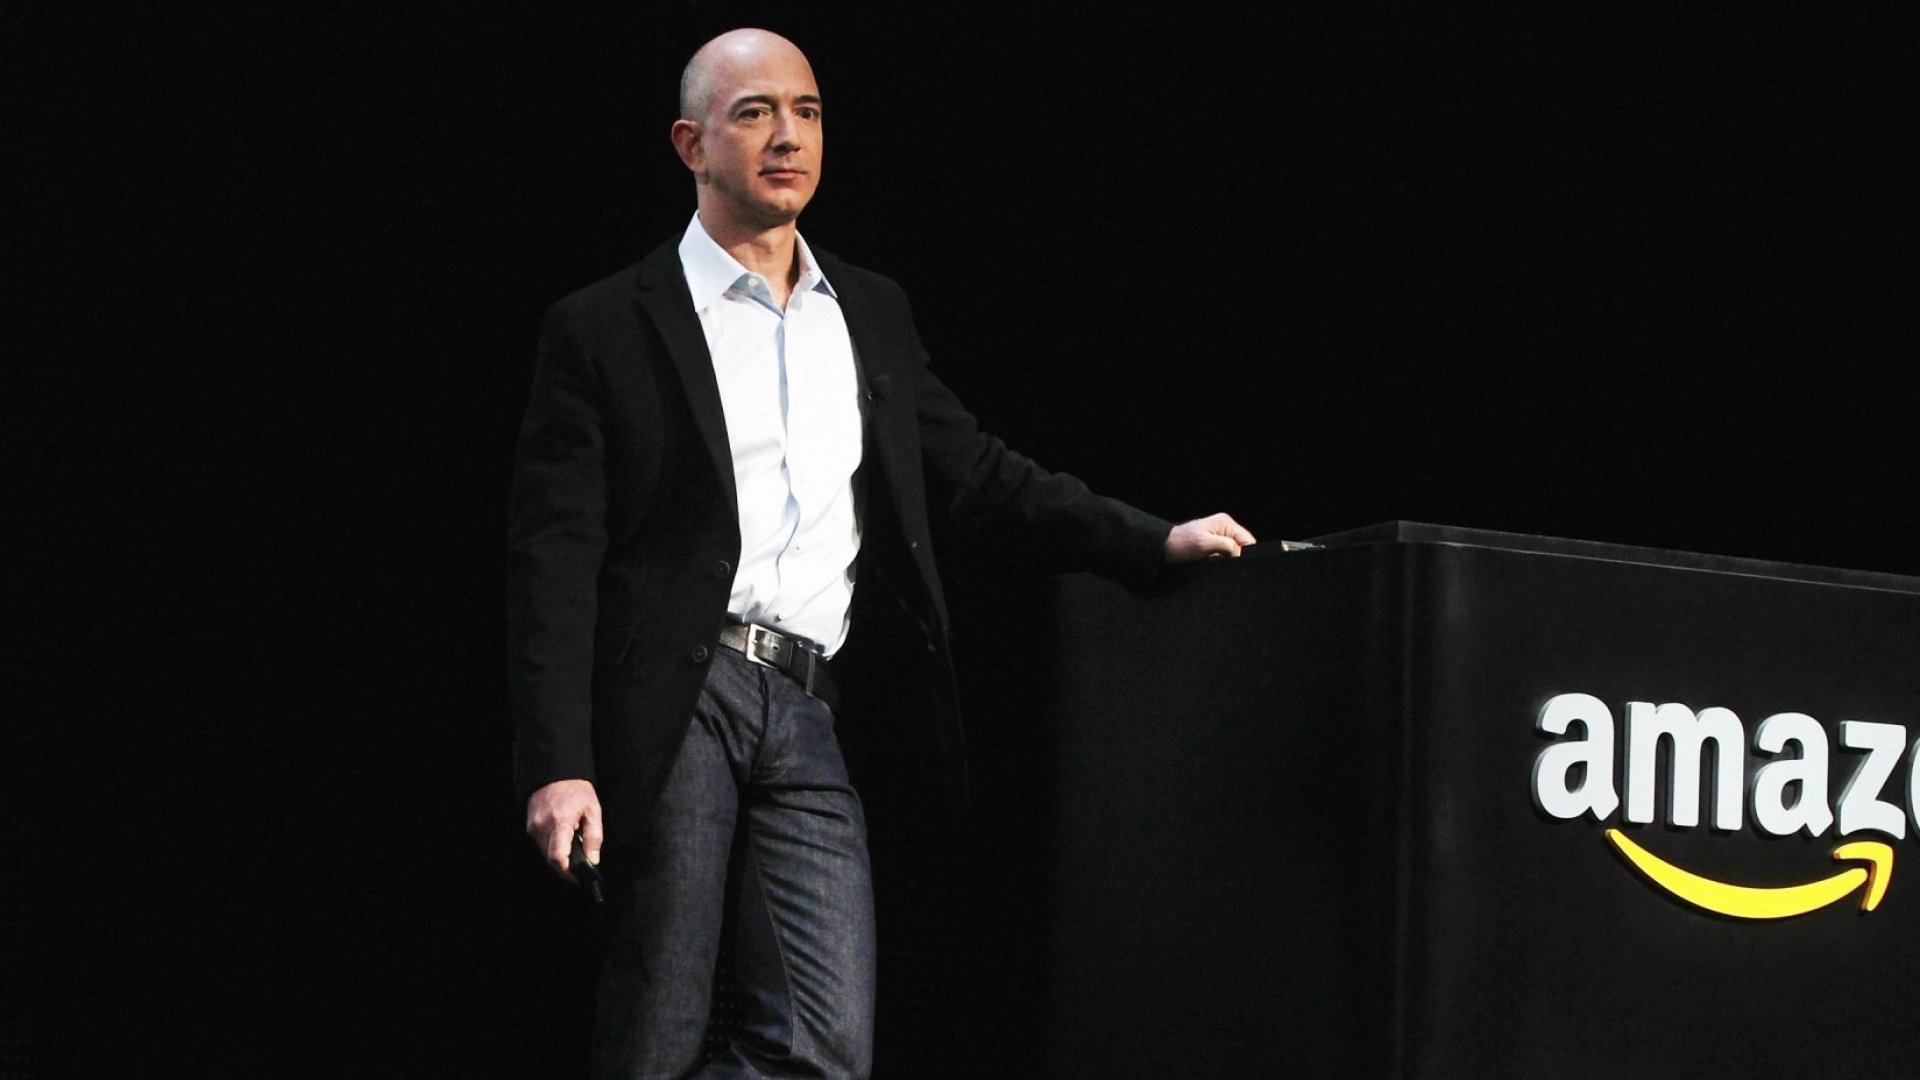 Amazon founder and CEO Jeff Bezos at an event.